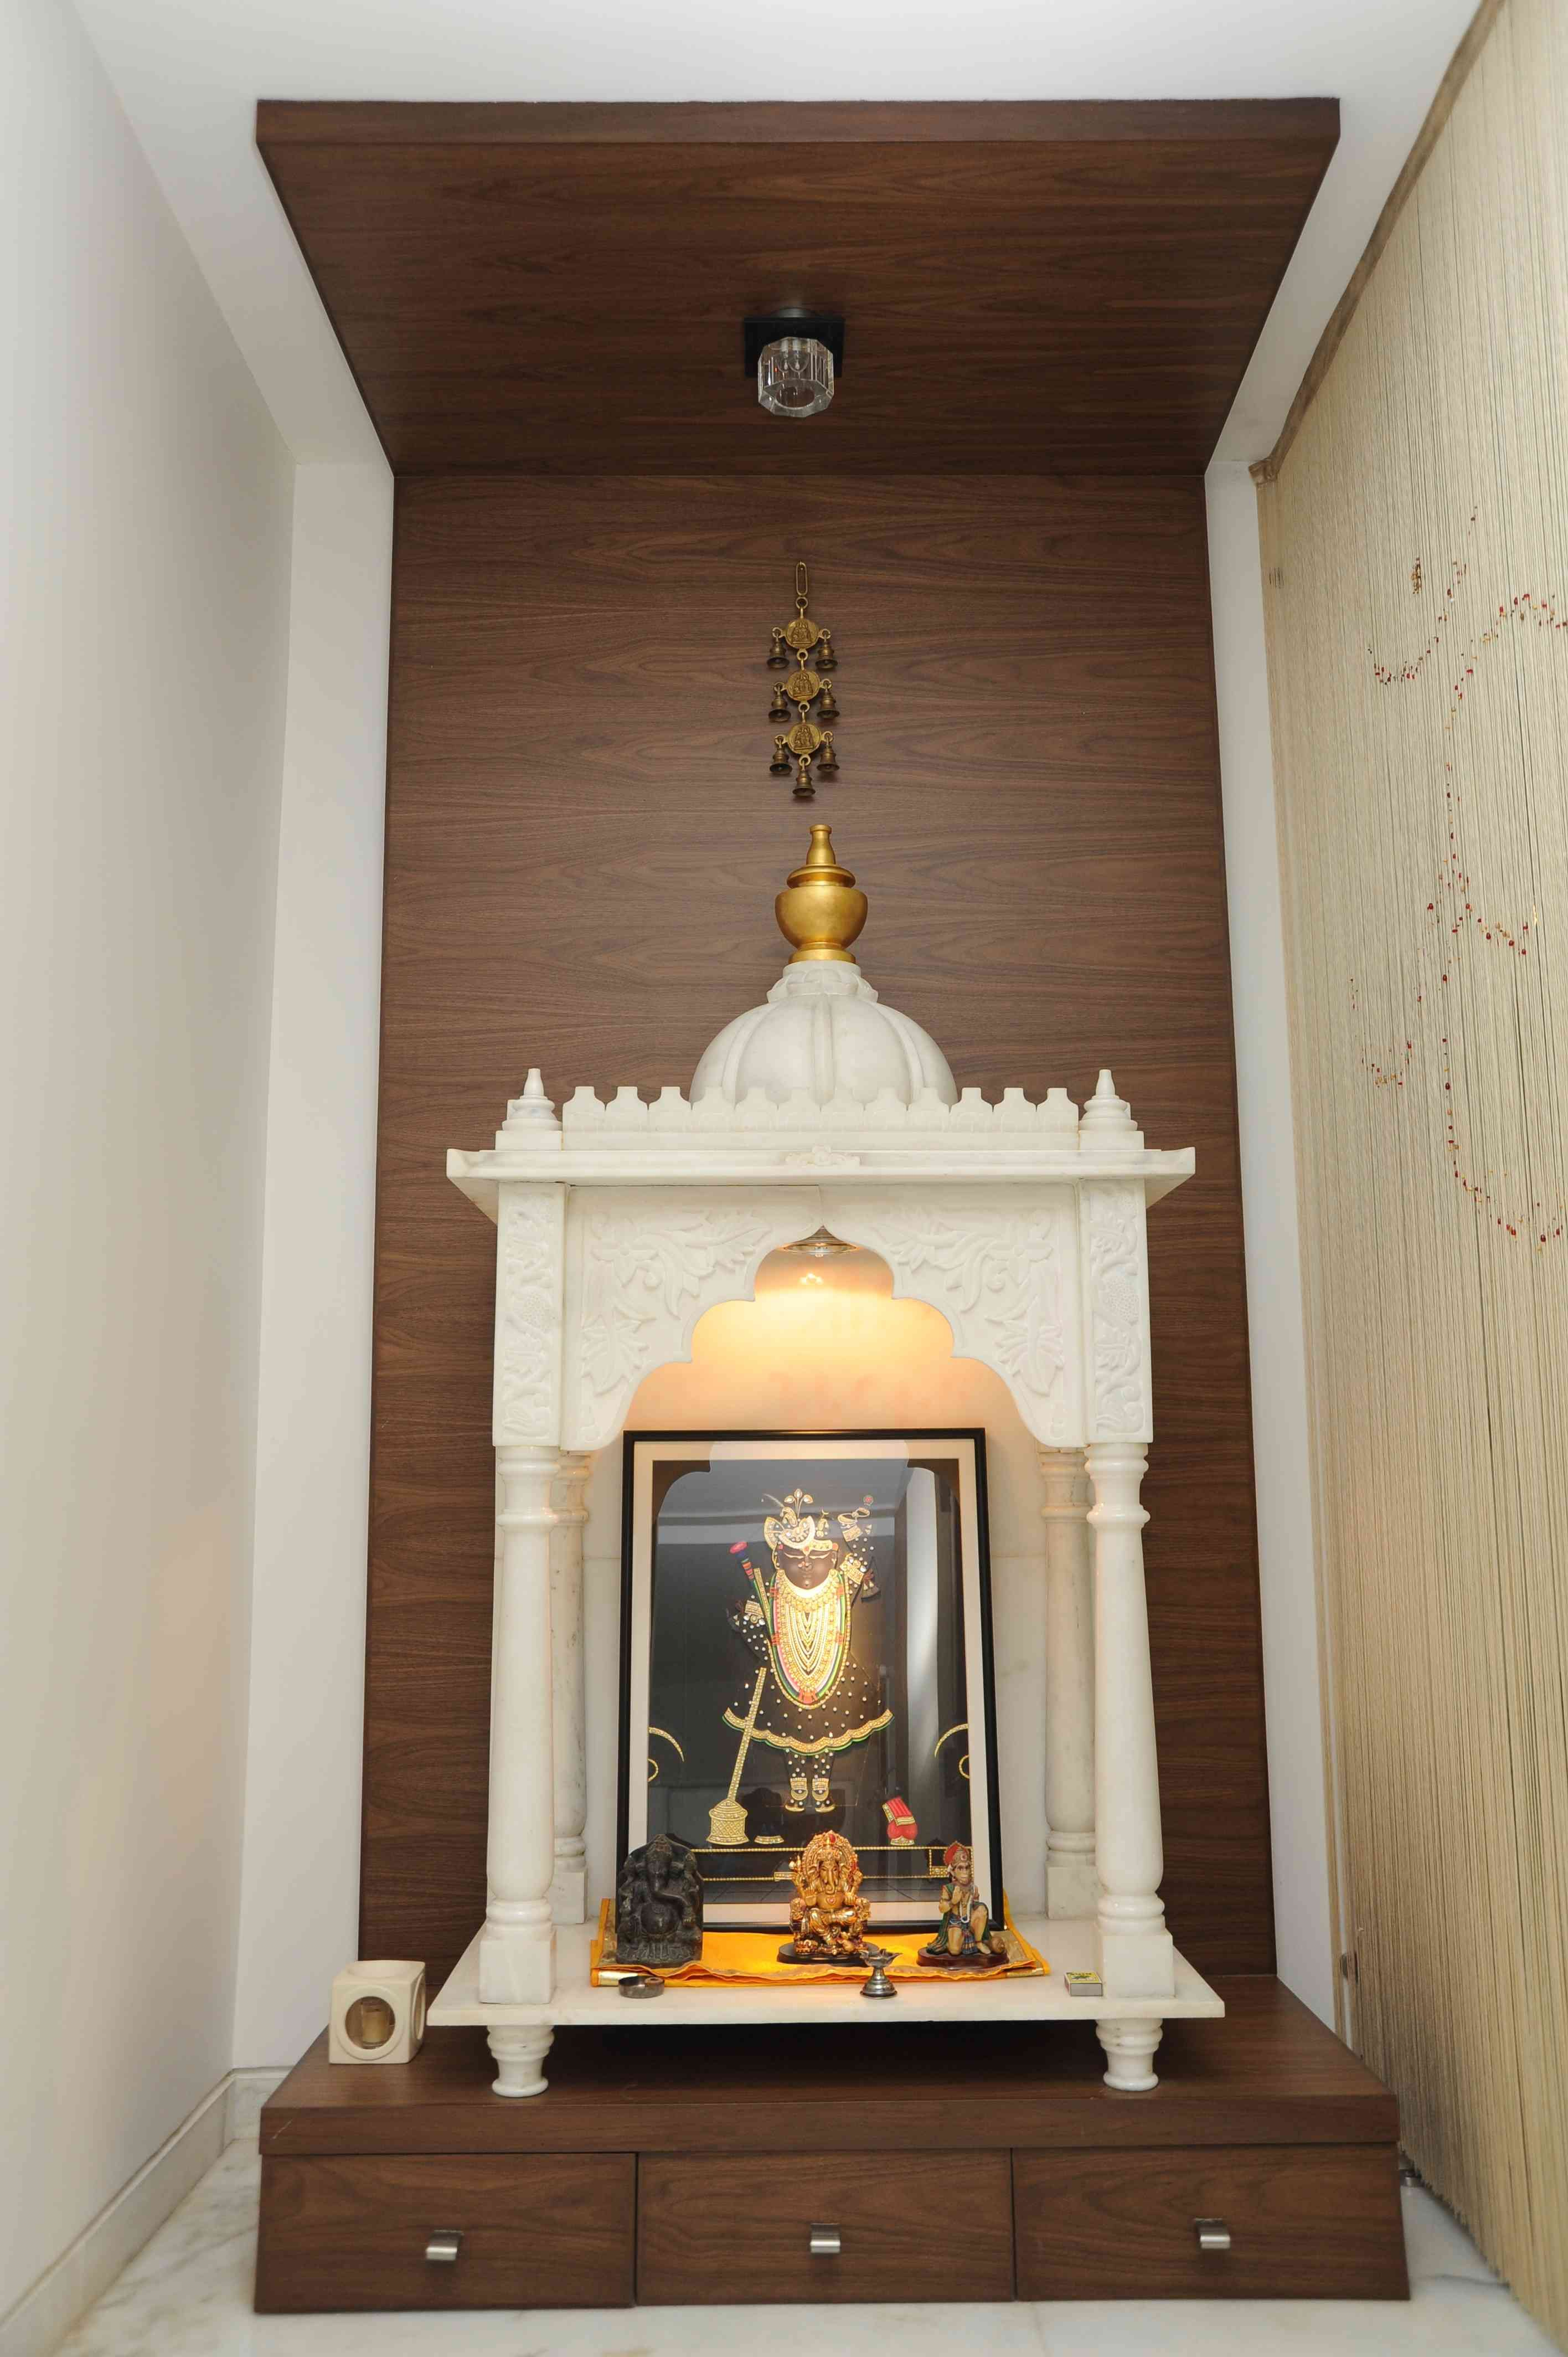 Best Kitchen Gallery: Decorating A Pooja Ghar Is One Of The Most Crucial Elements In Your of Hindu Temple For Home Designs on rachelxblog.com